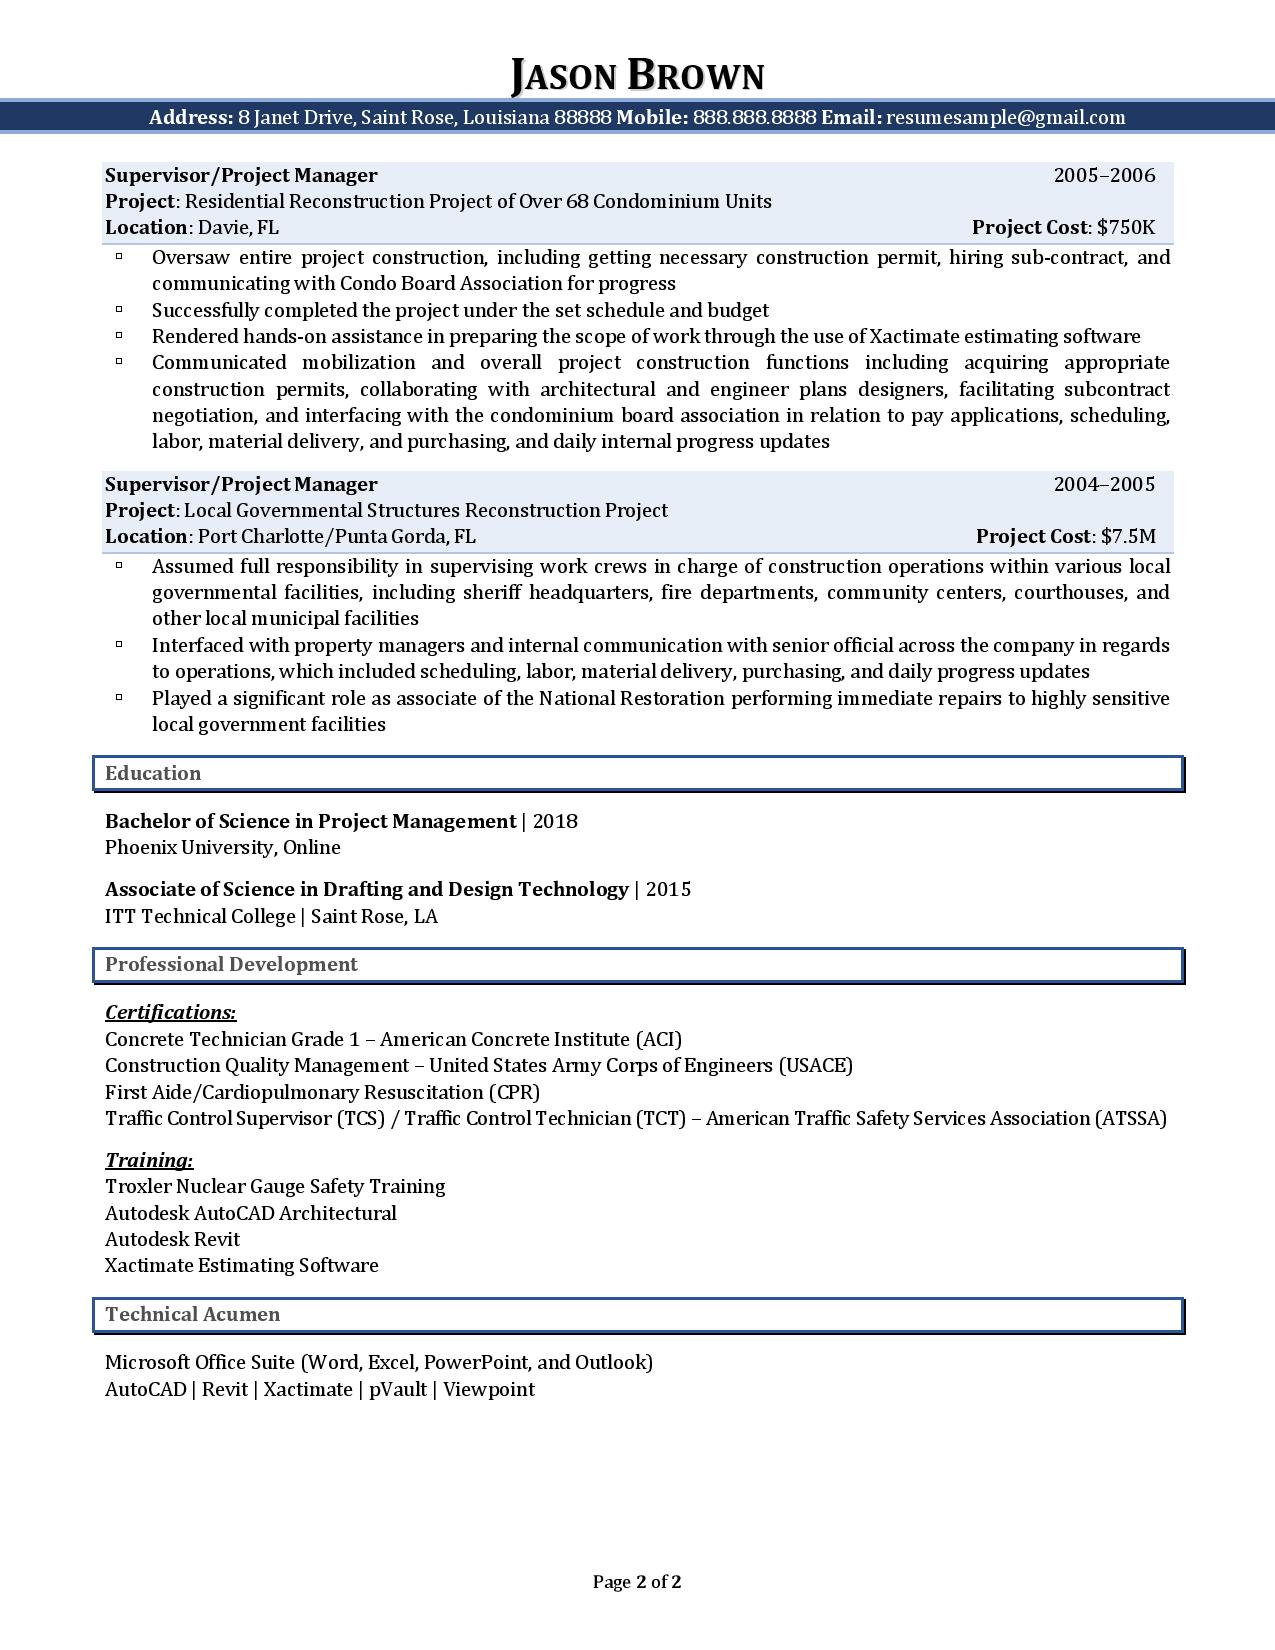 Page 2 of a sample from our civil engineer resume examples